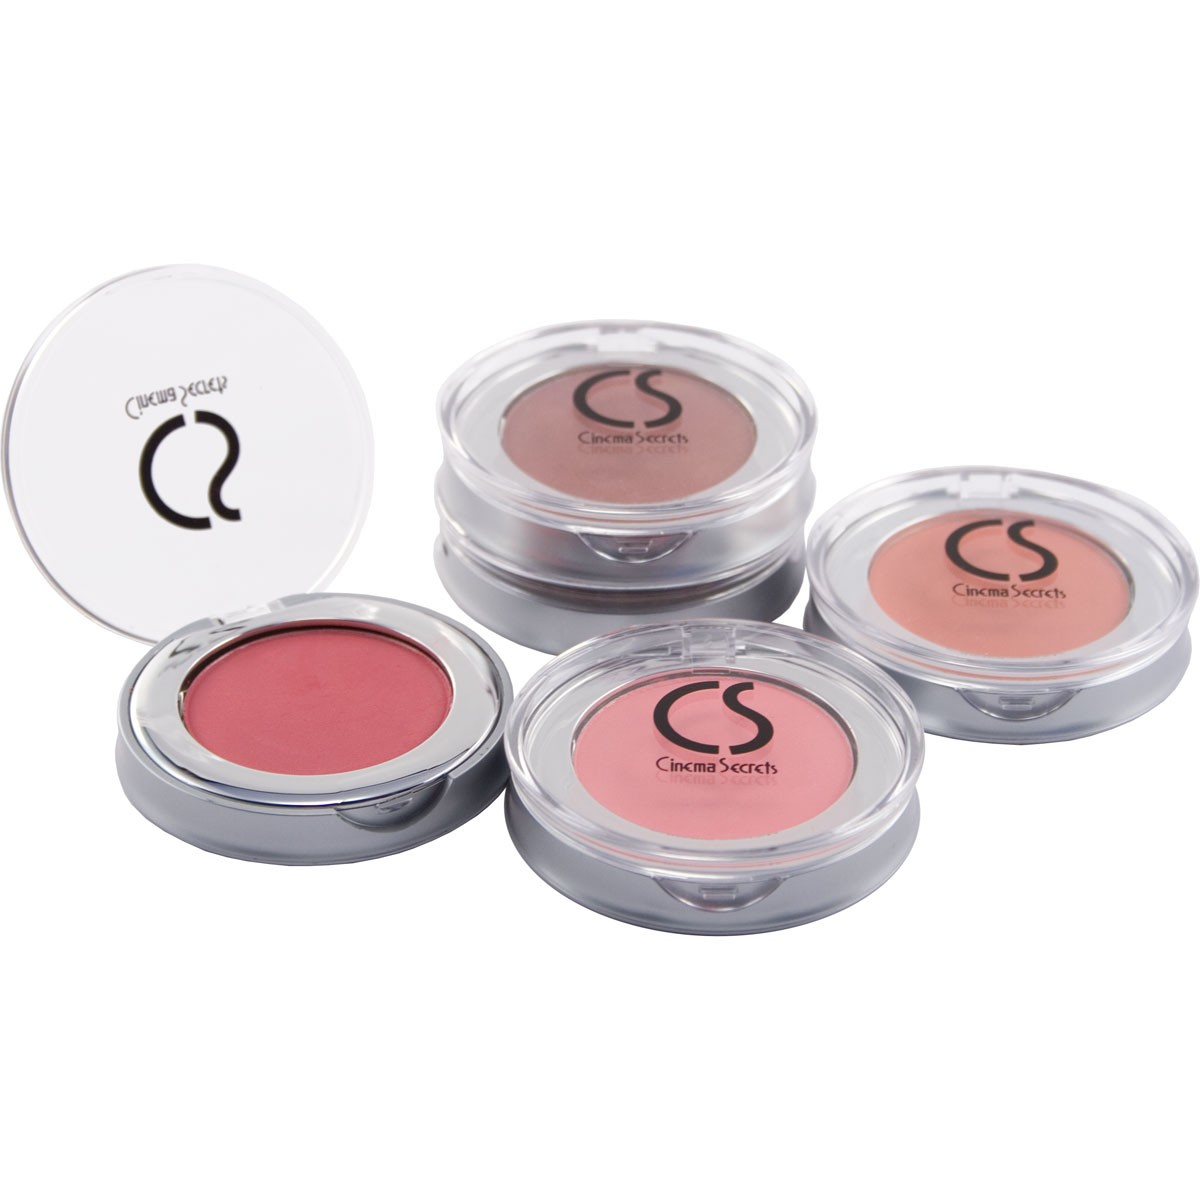 ULTIMATE POWDER BLUSH 3 Gms